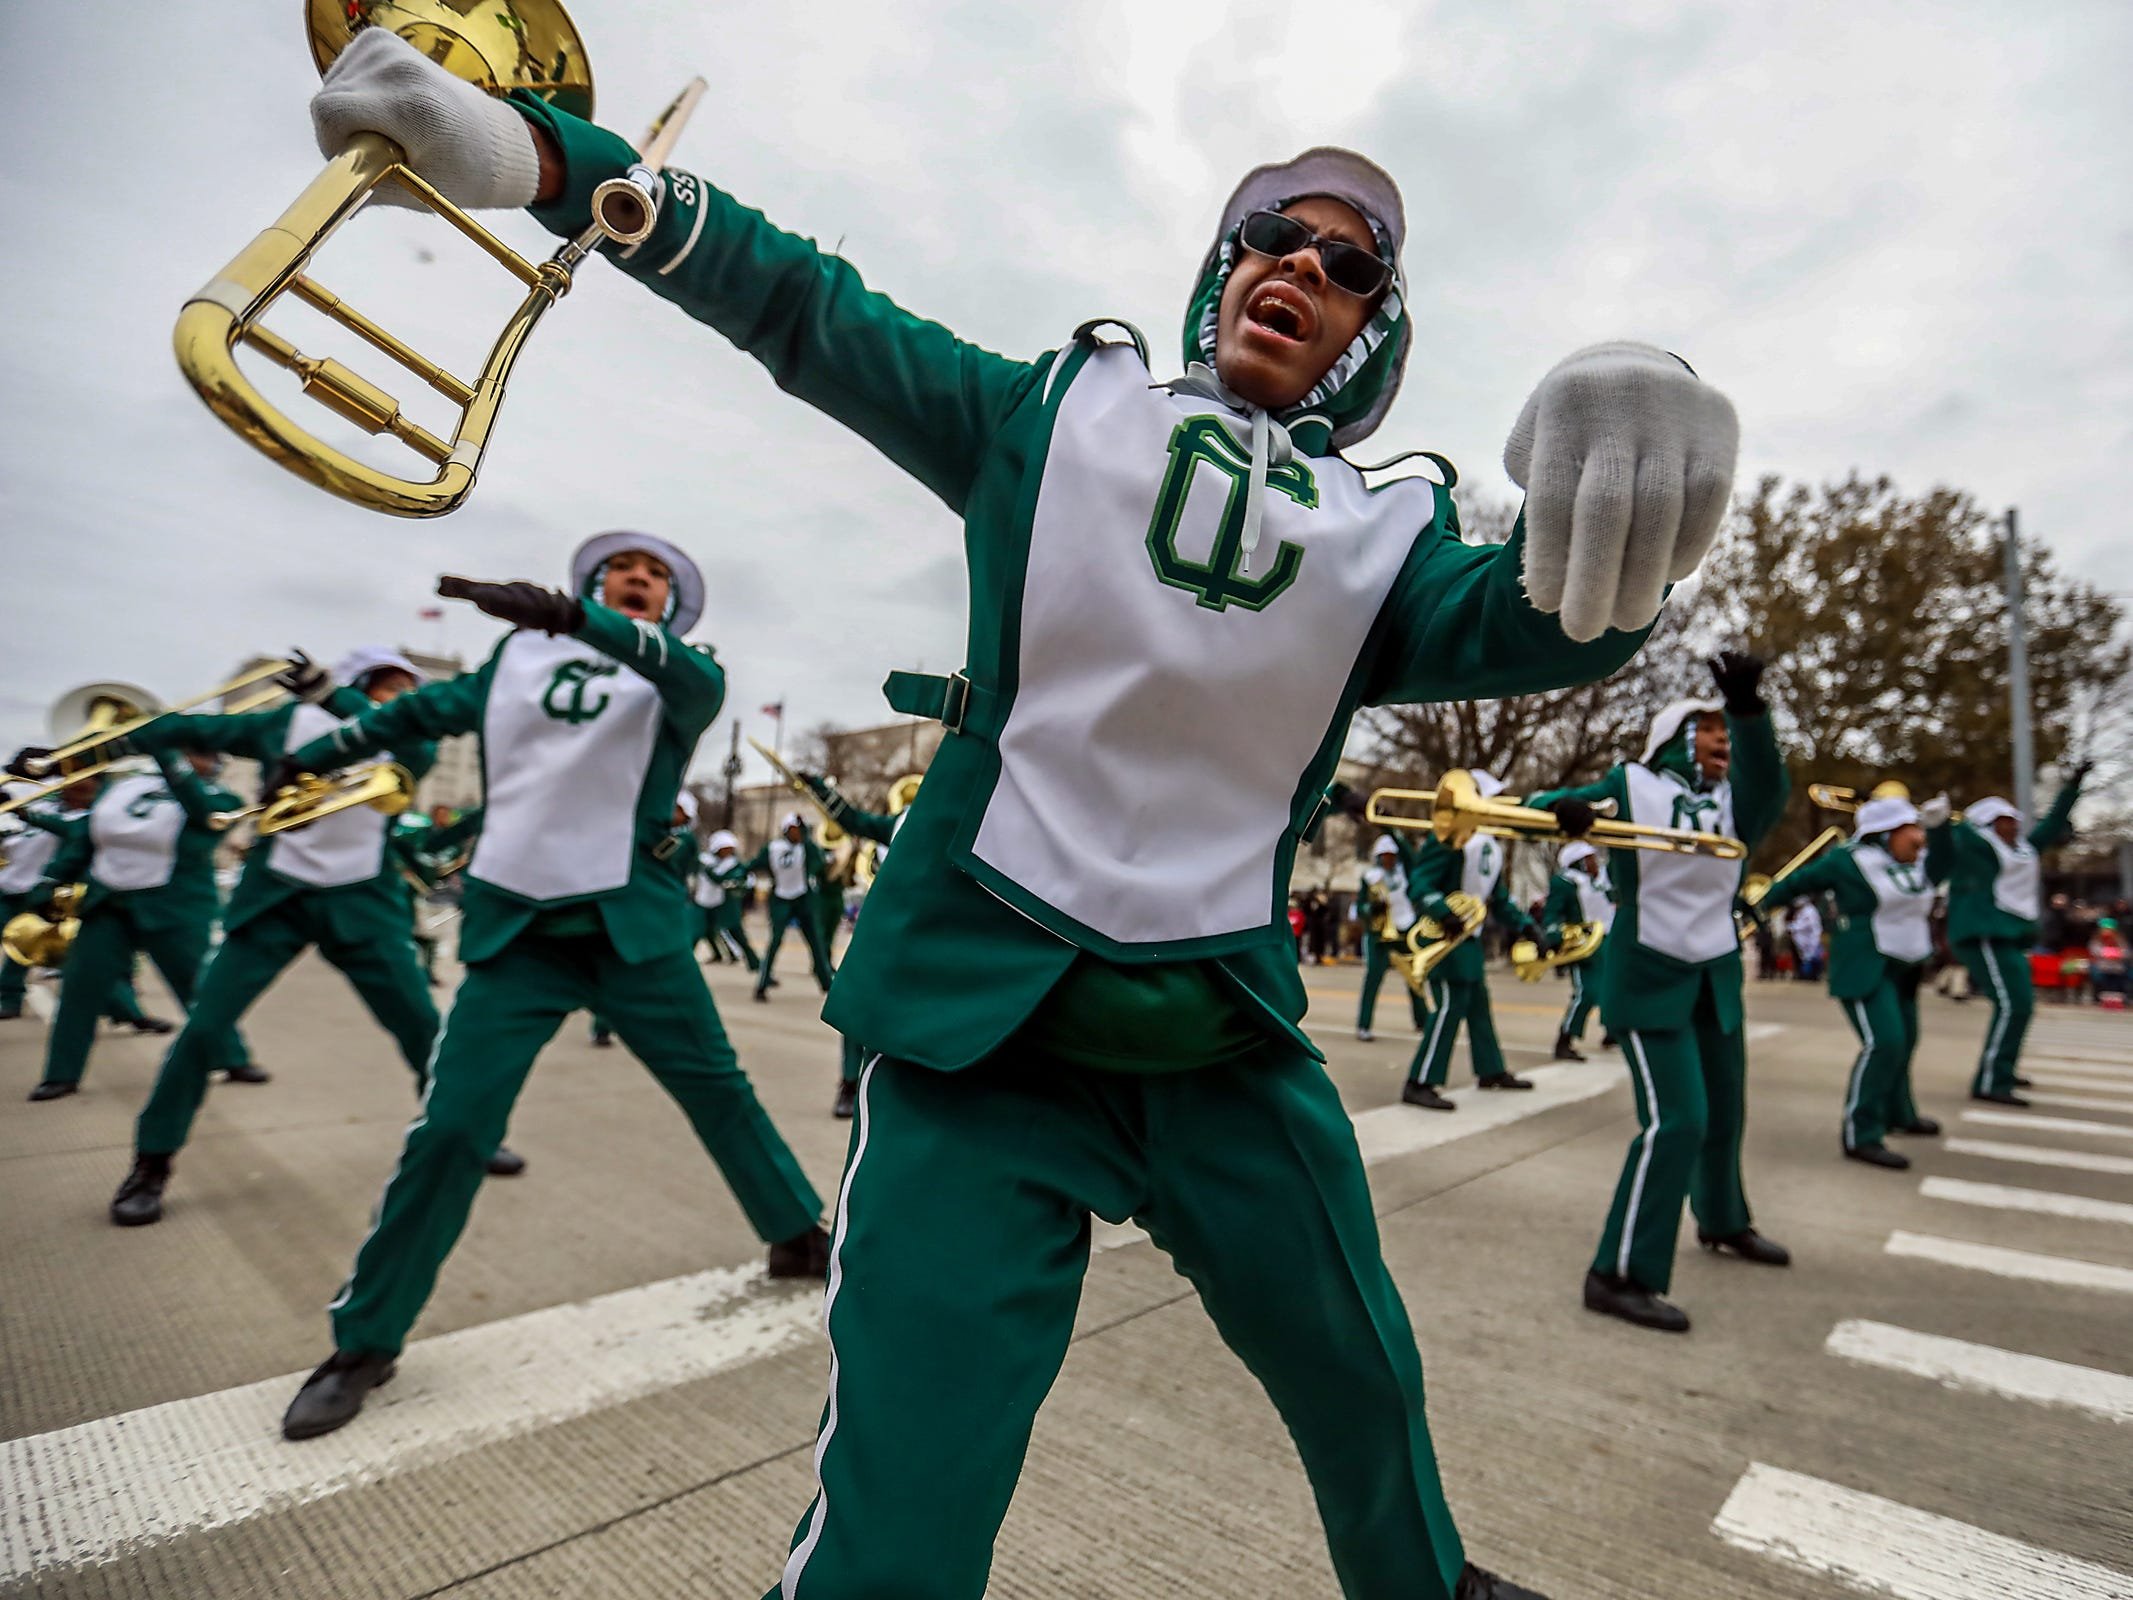 Cass Technical High School marching band performs, during America's Thanksgiving Parade in Detroit on Thursday, Nov. 22, 2018.